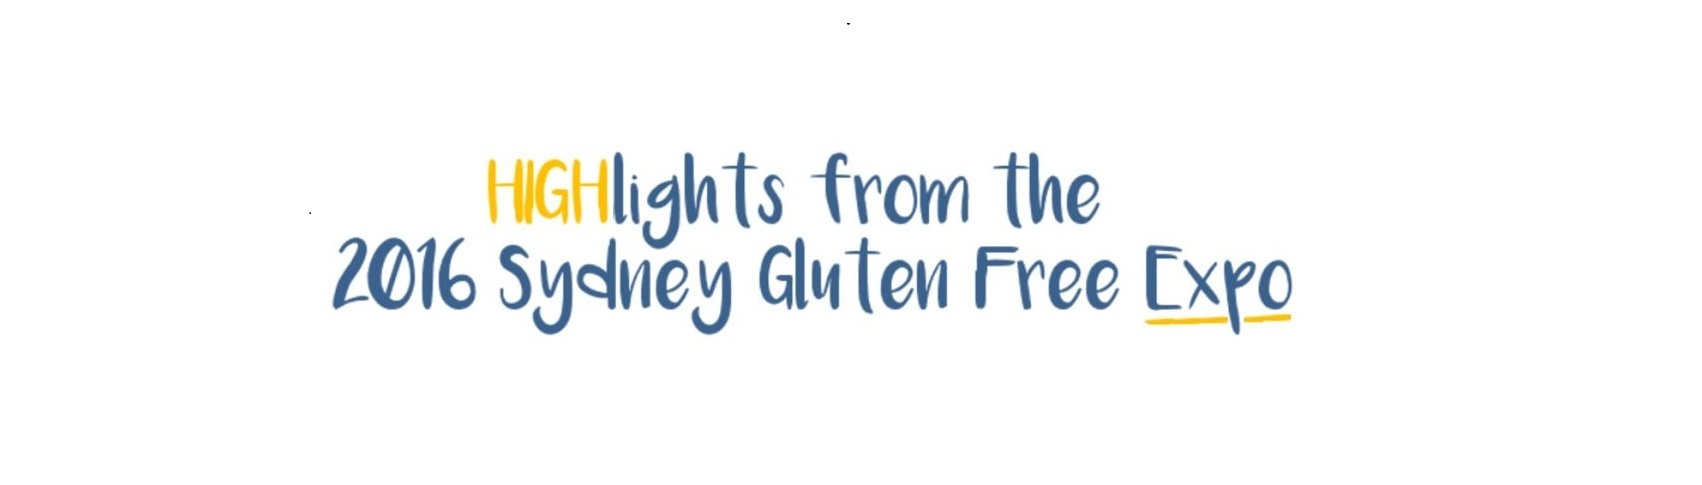 Highlights from the 2016 Sydney (NSW/ACT) Gluten Free Expo